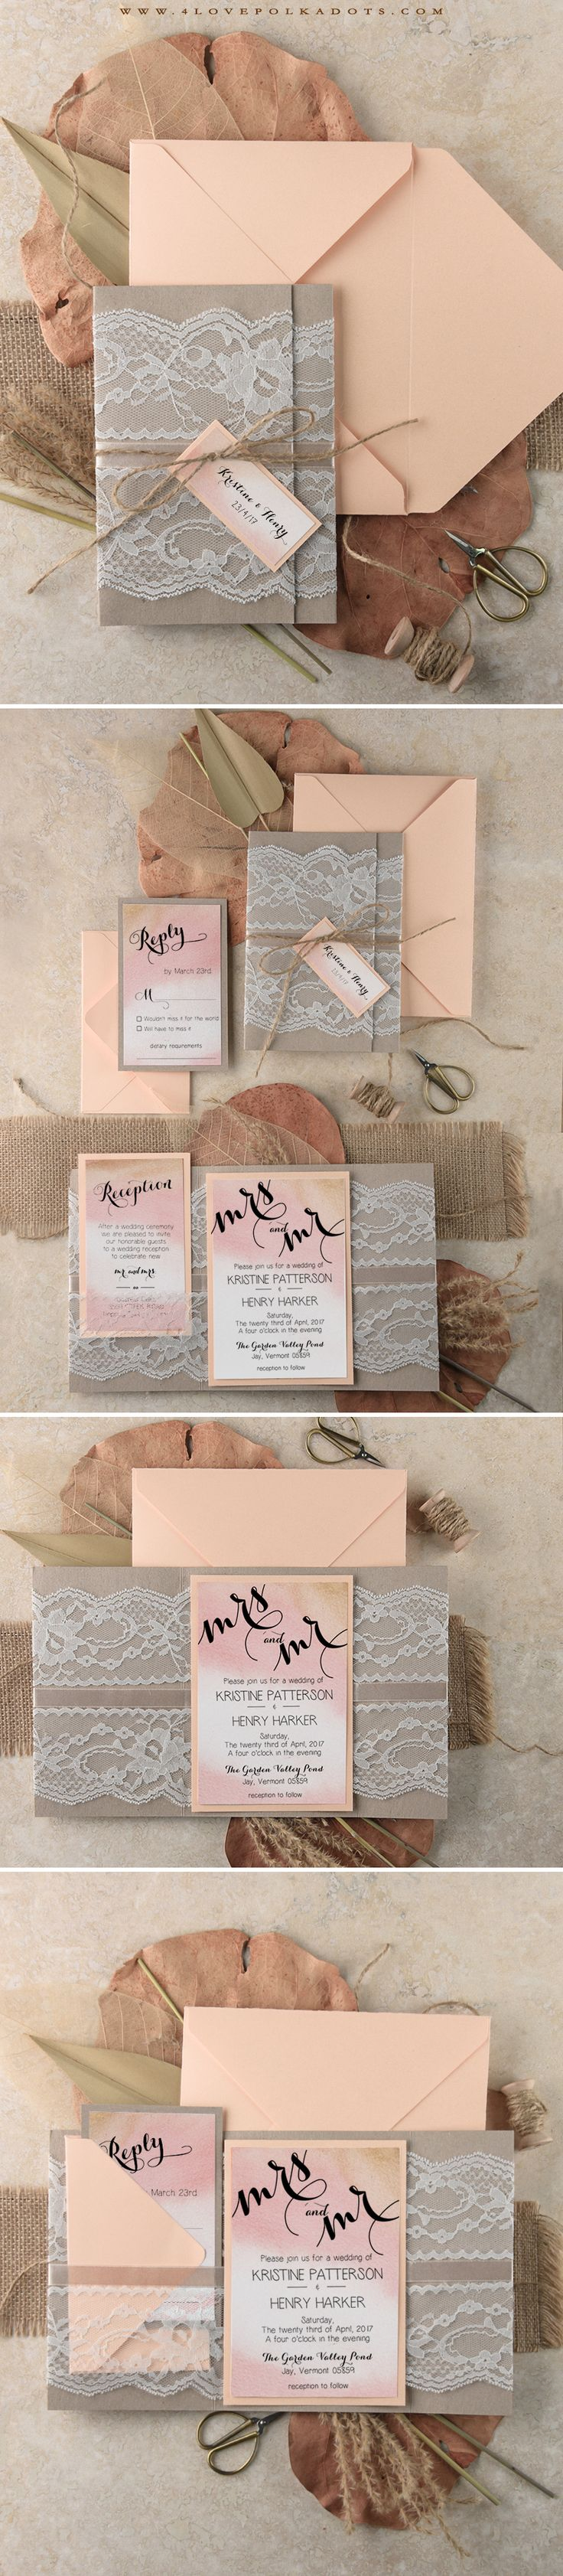 Ombre Wedding Invitations With Real Lace Omre Weddingideas Fall Autumn Harvestwedding